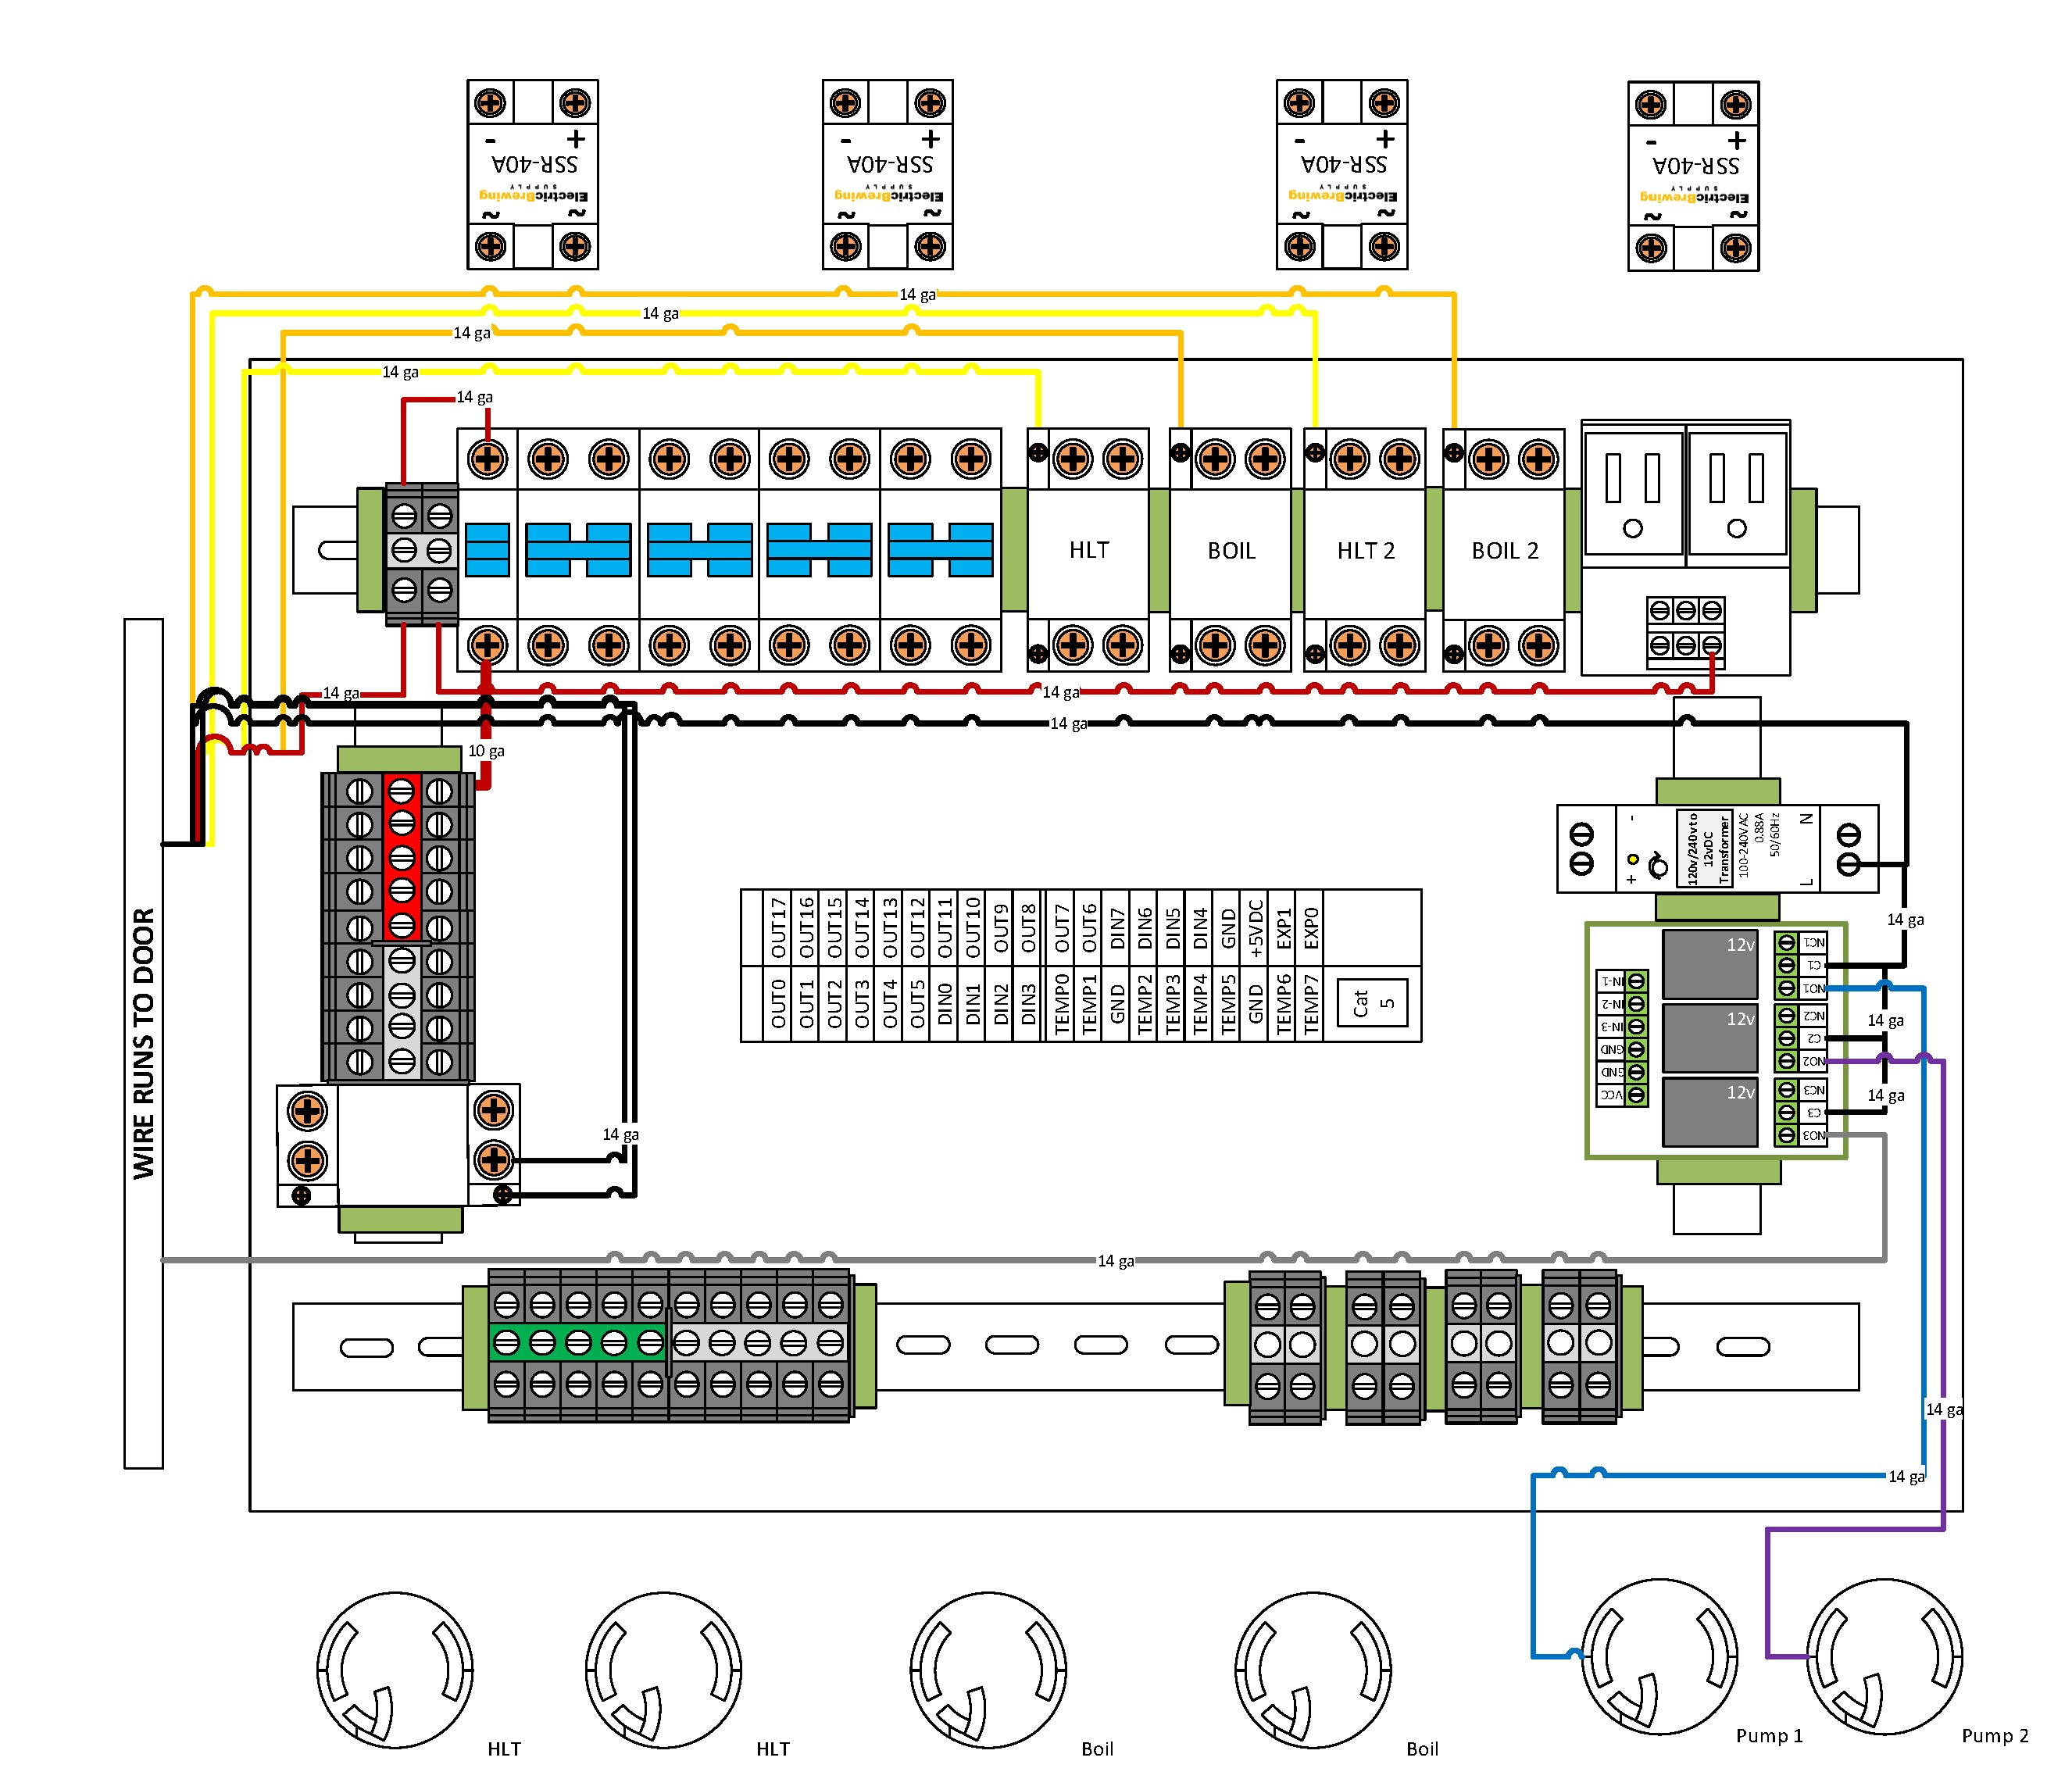 Electric Brewery Wiring Diagramontrol Panel 4 Element plete Page 1 Bcs Gen2 Diagram Wires Electrical Circuit